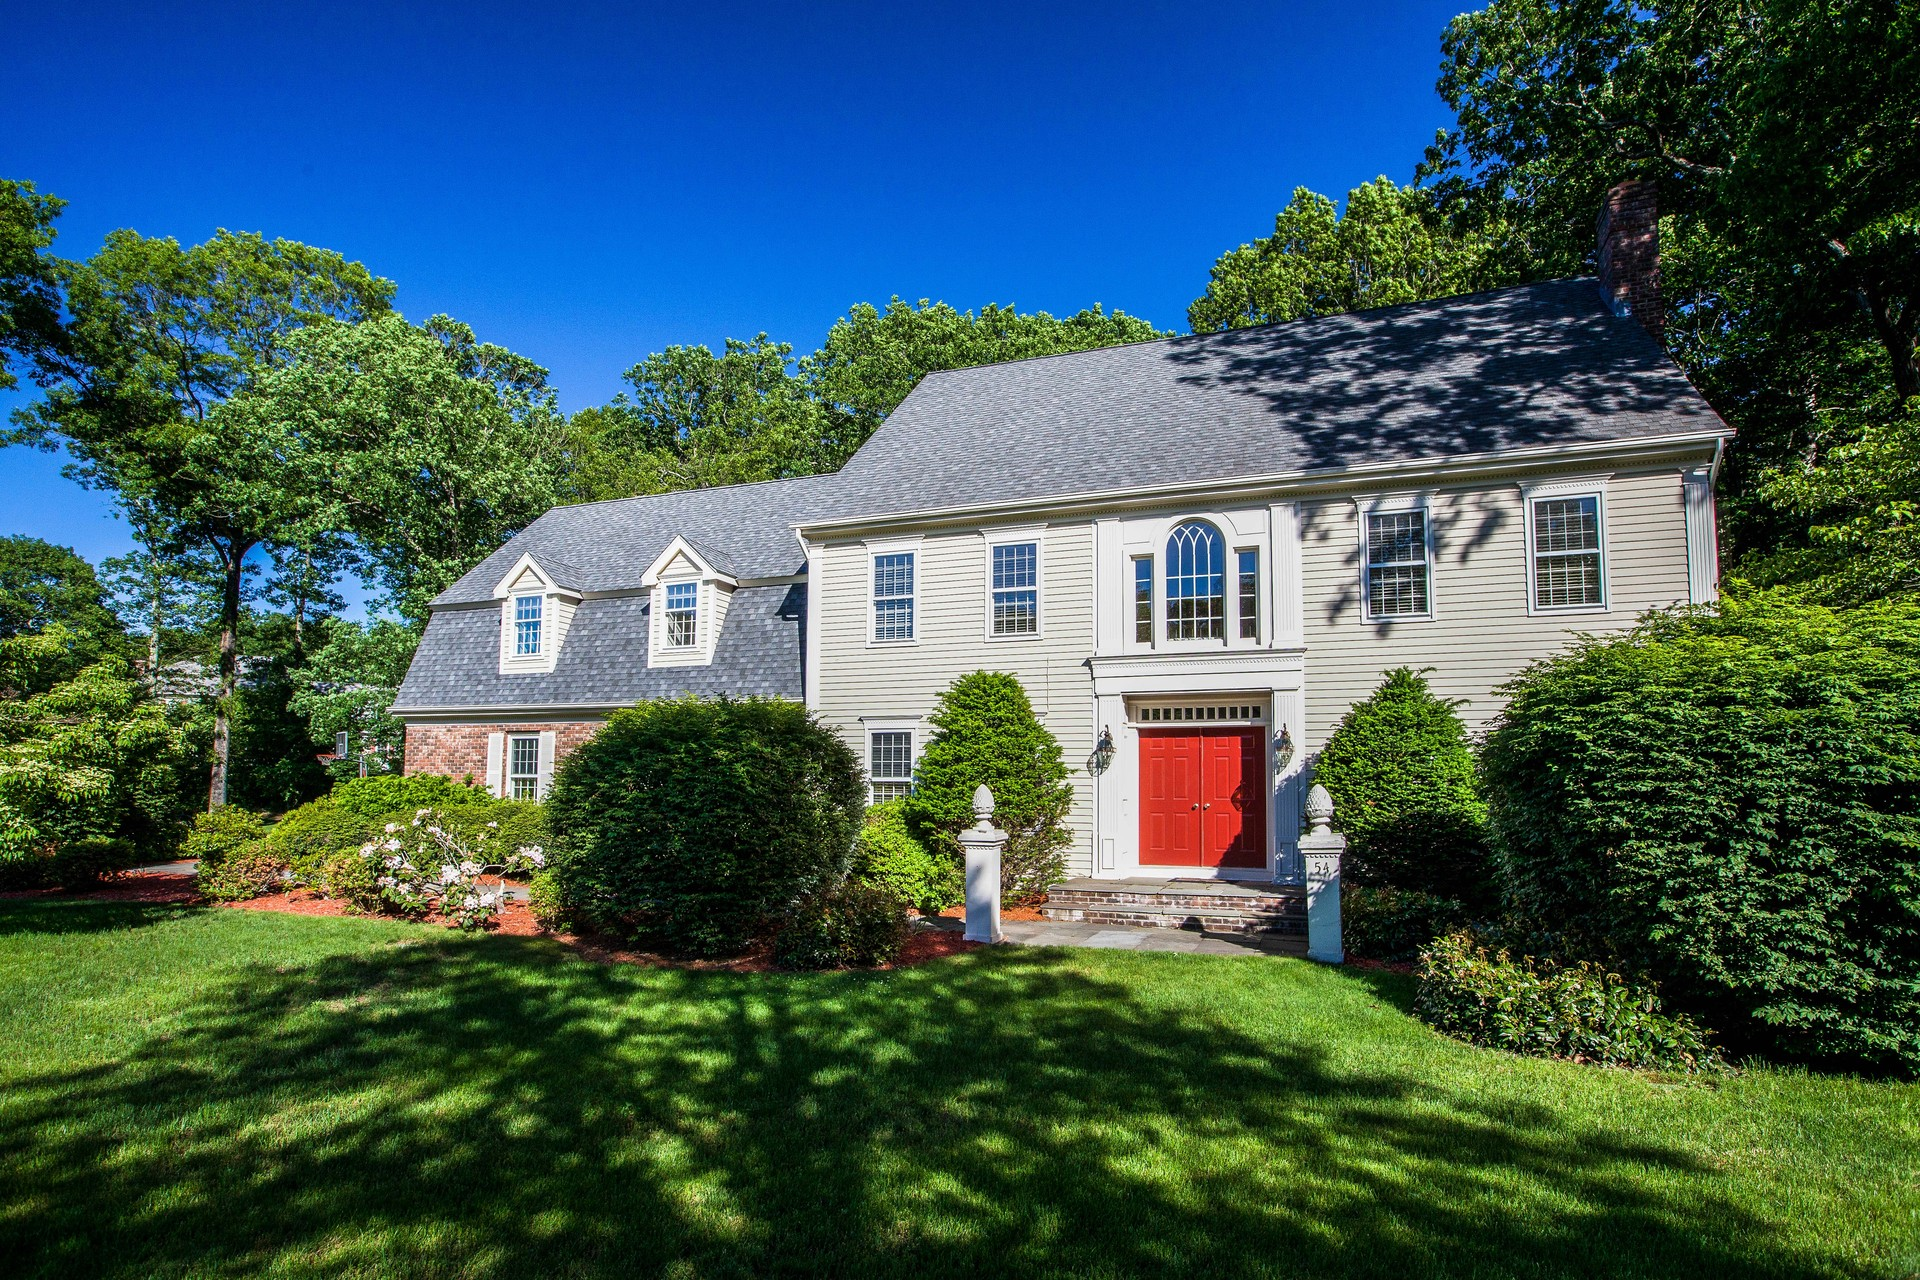 Casa Unifamiliar por un Venta en 54 Field Brook Rd Madison, Connecticut 06443 Estados Unidos